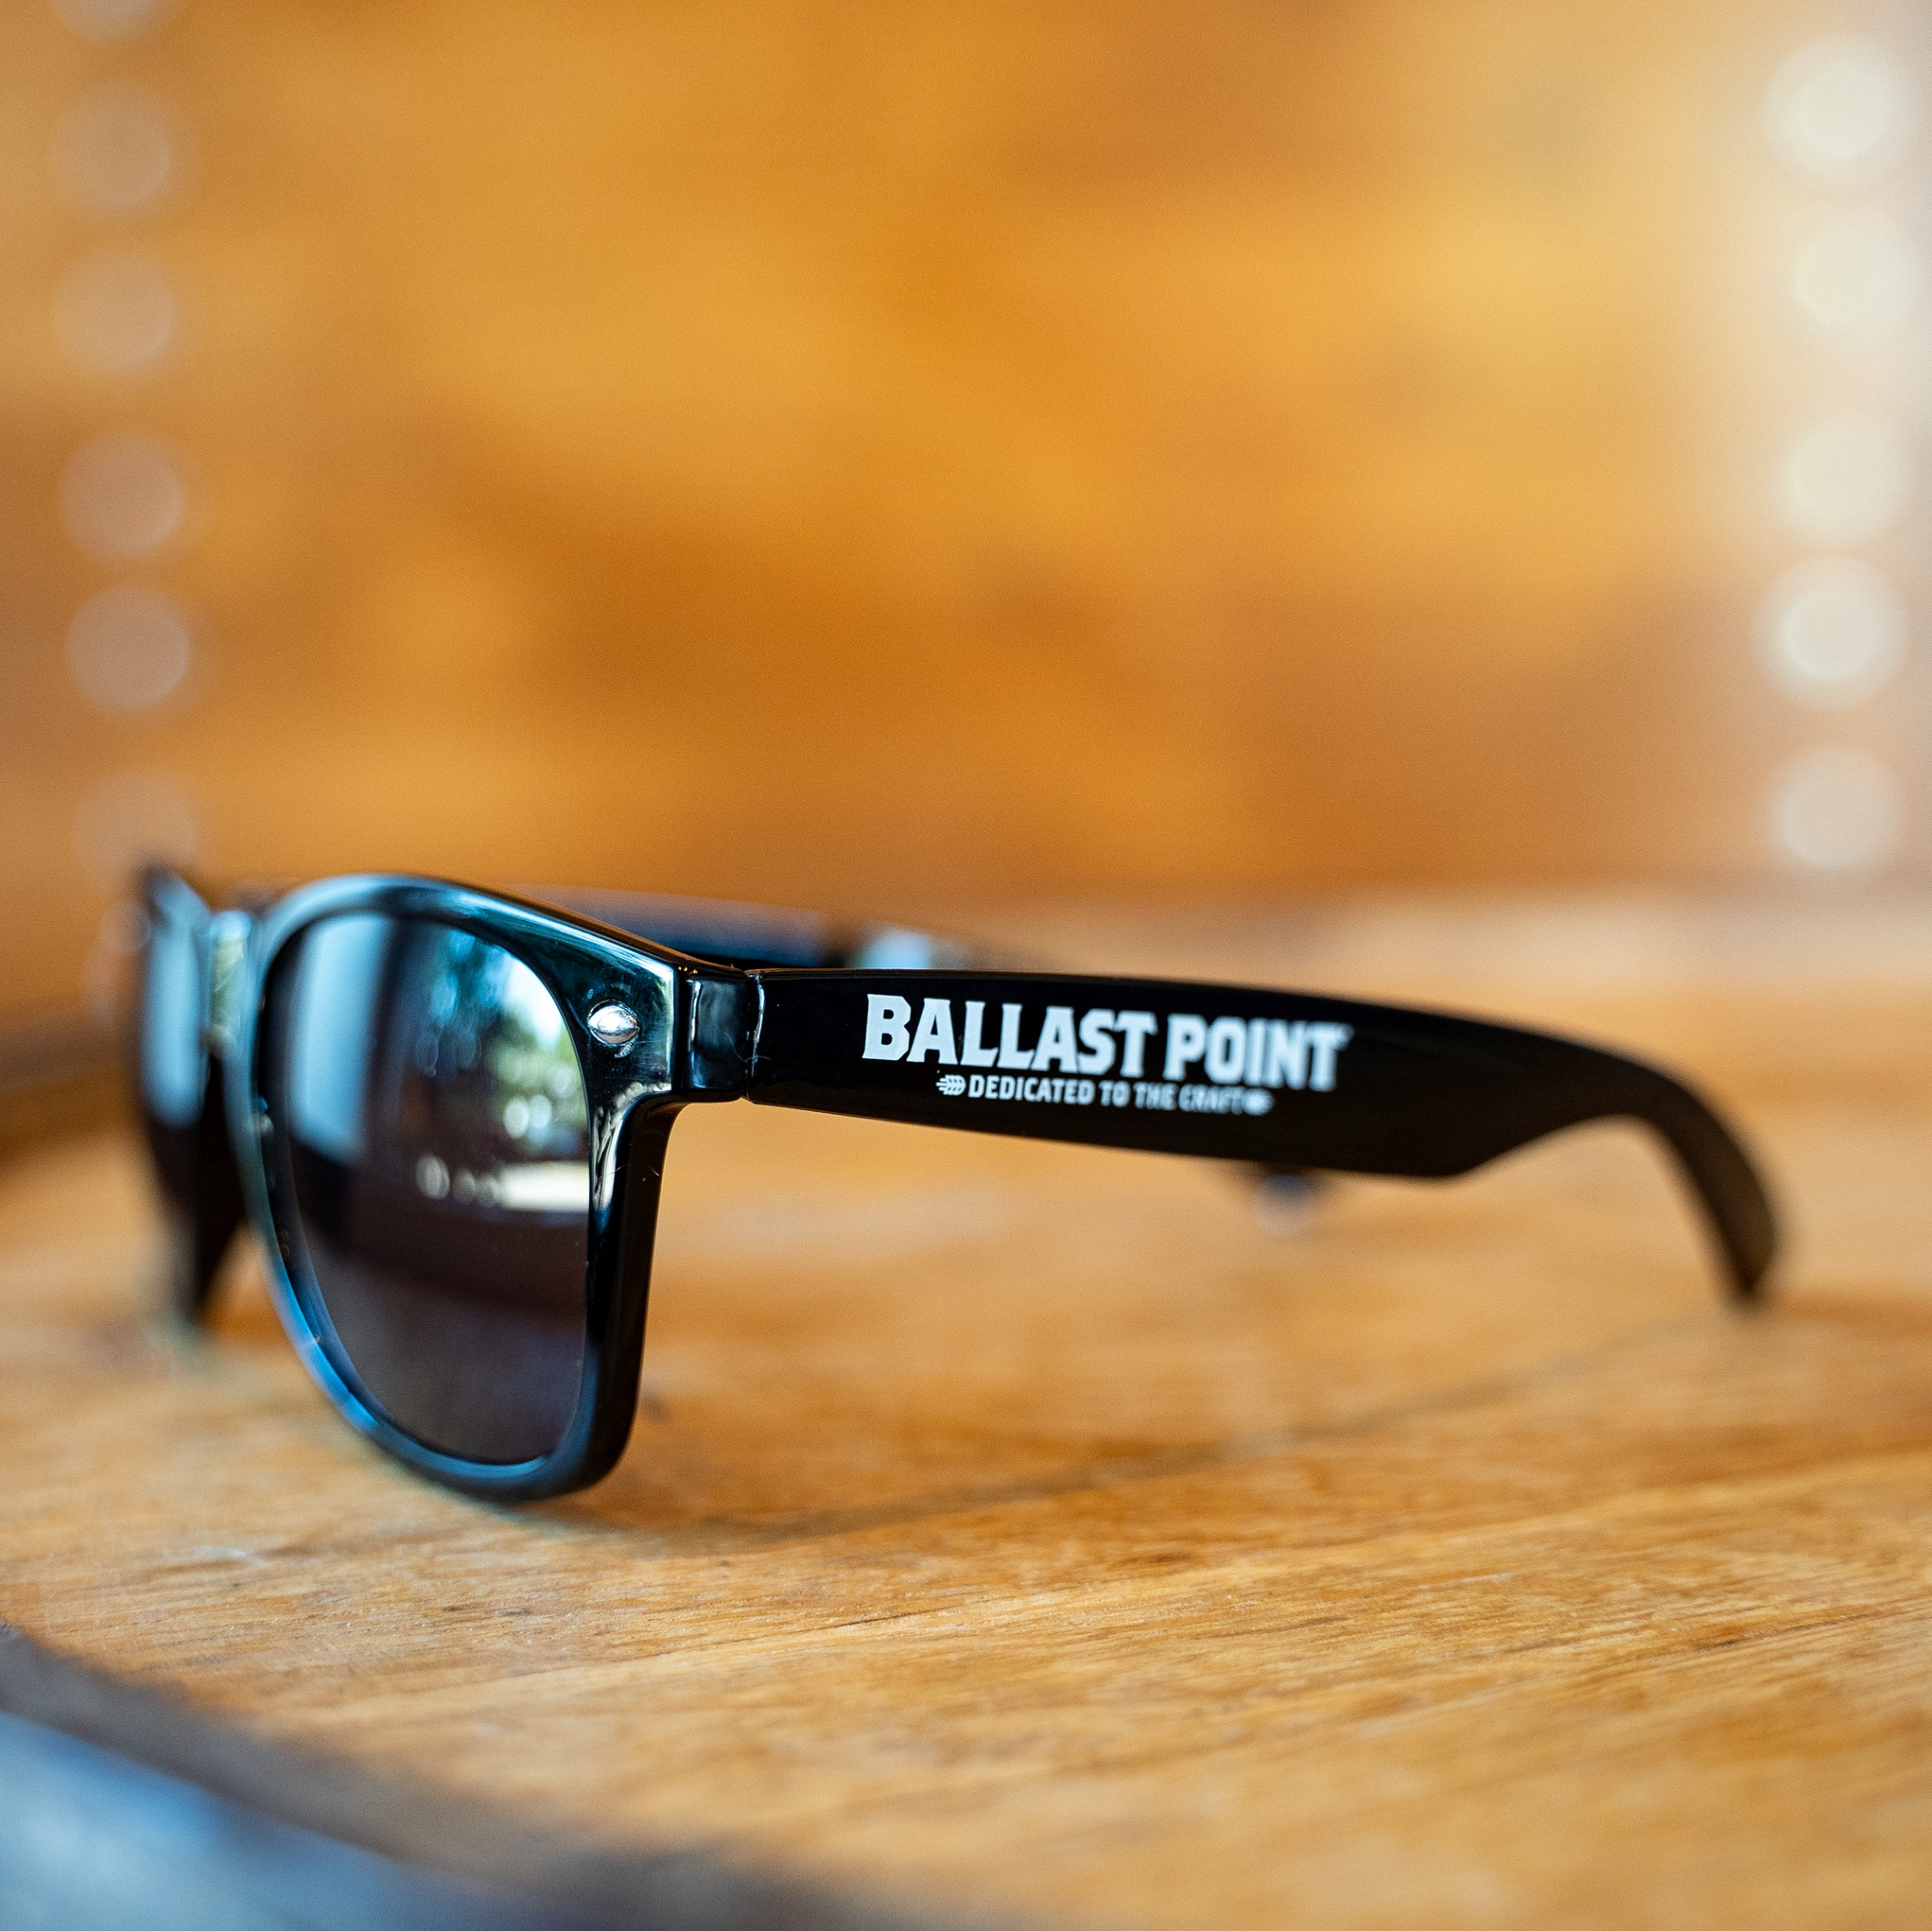 Ballast Point Sunglasses SWATCH